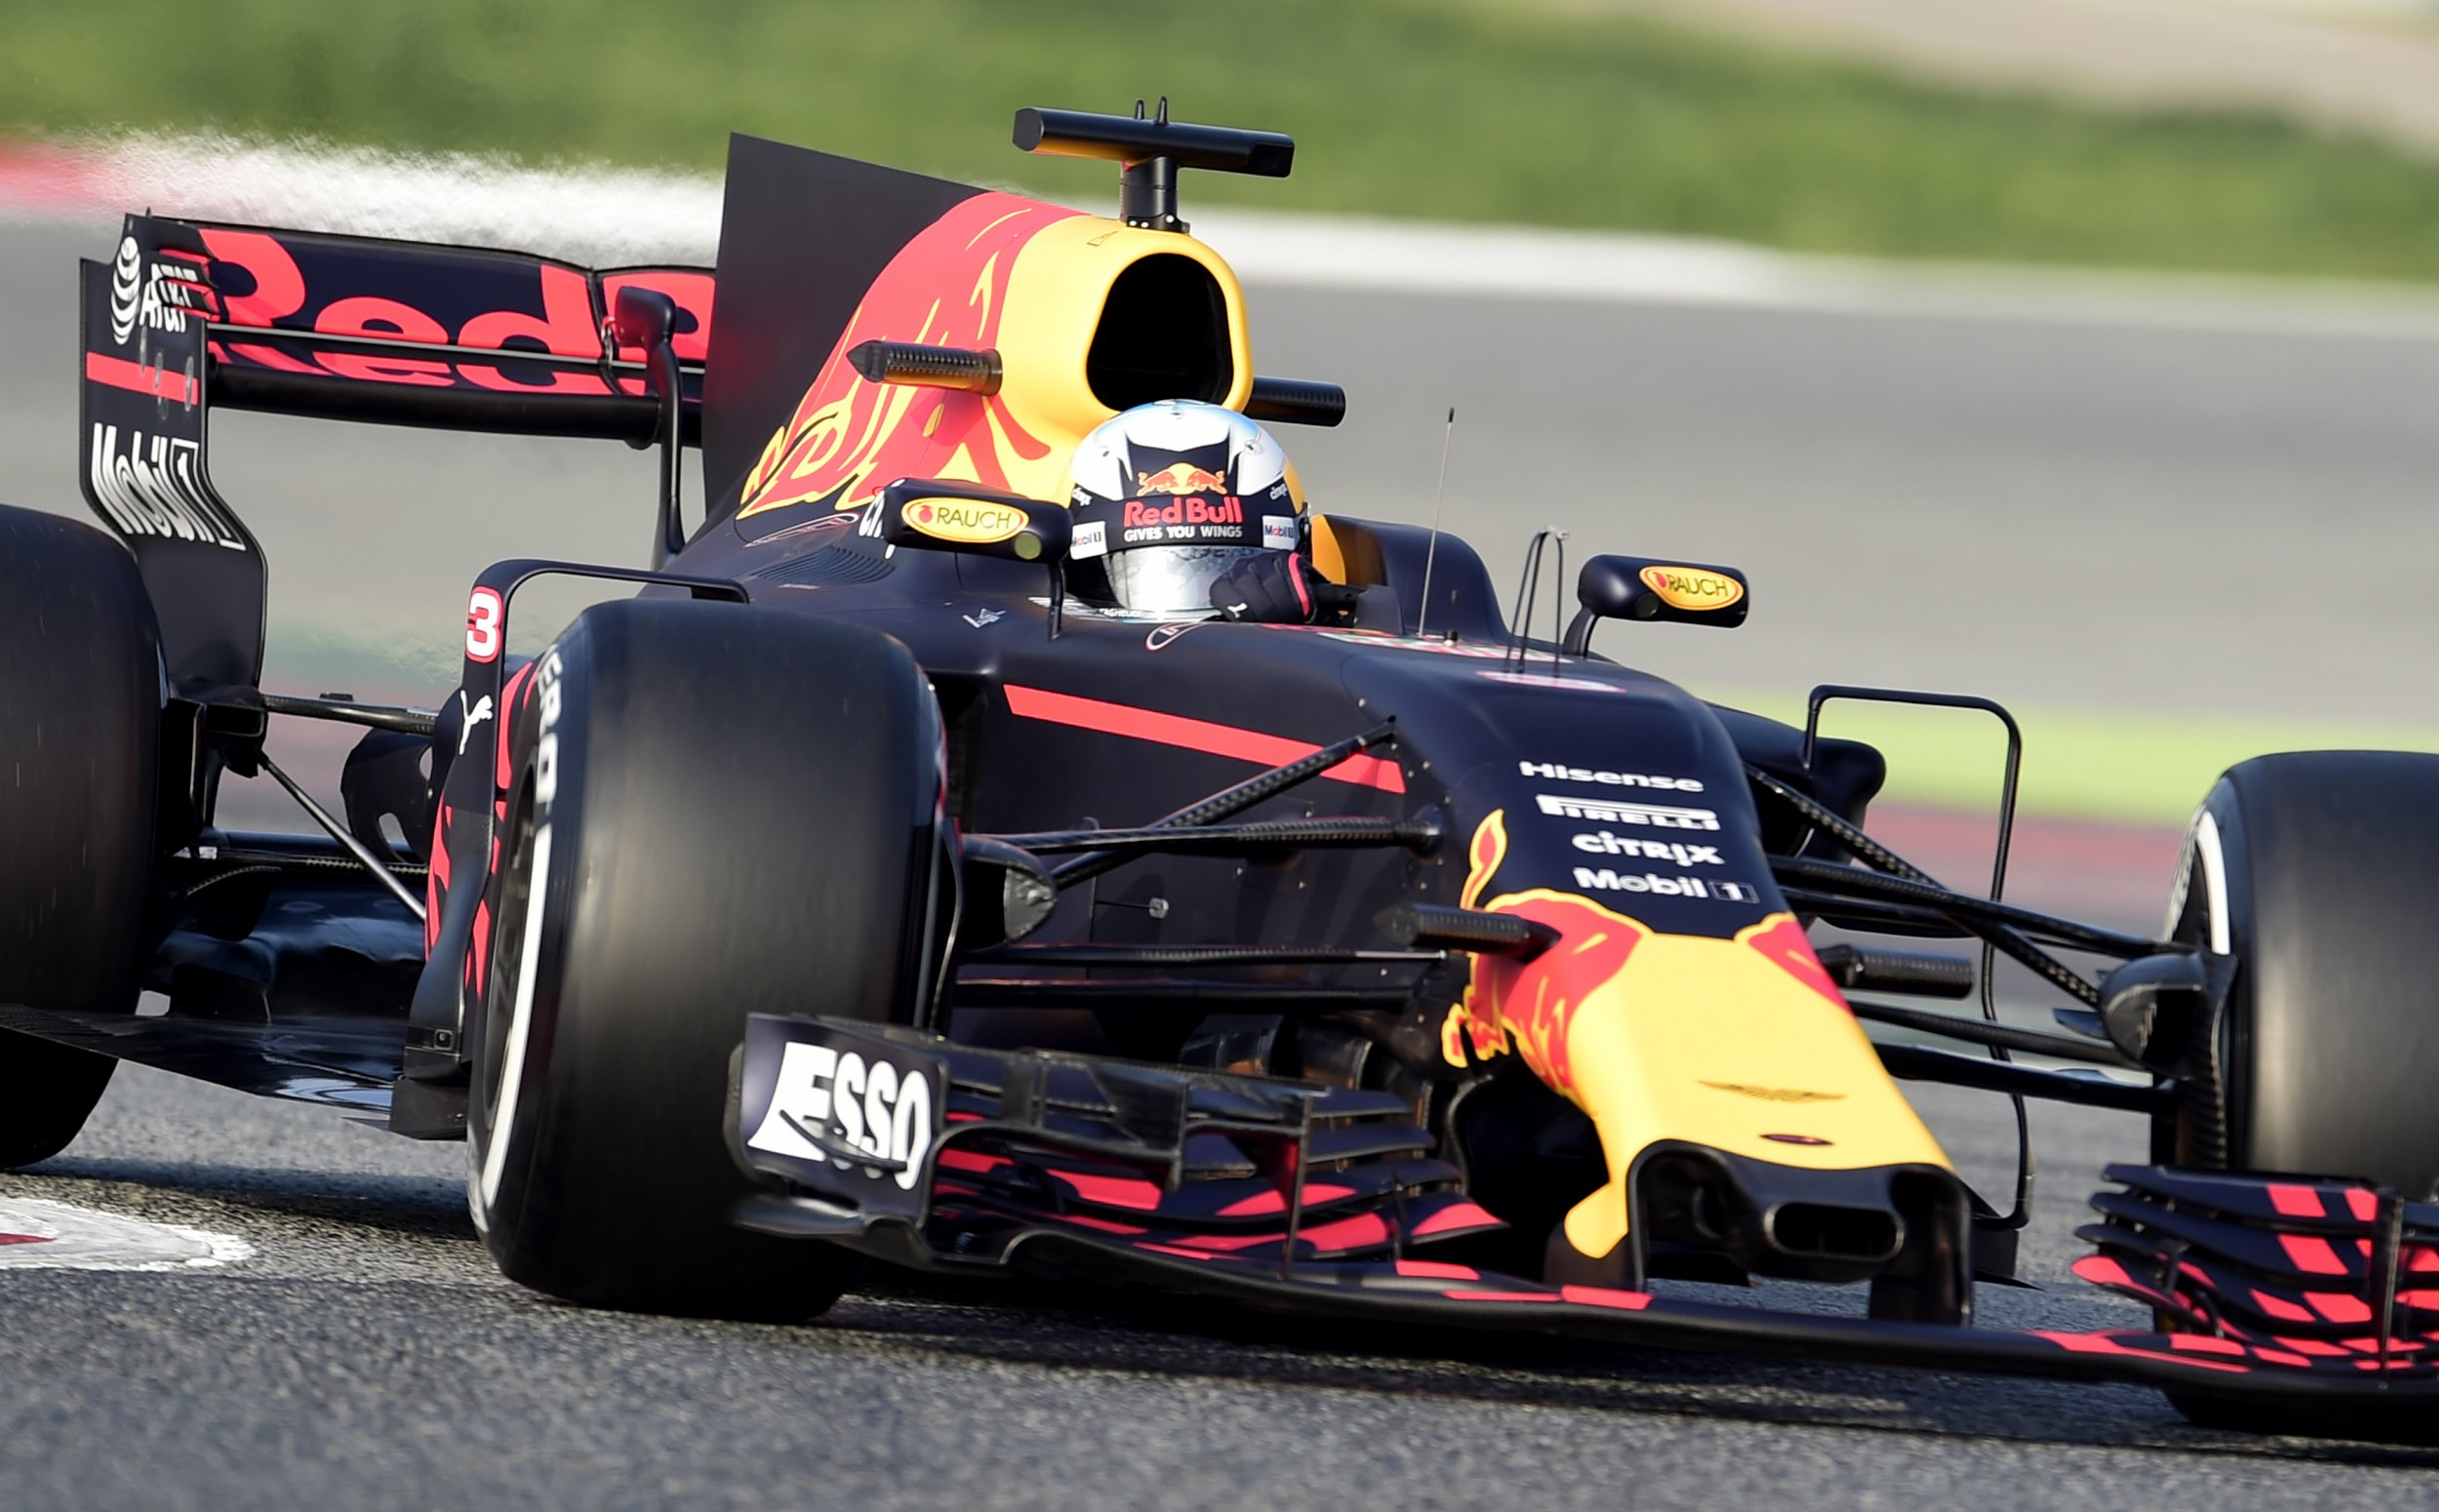 Red Bull Racing's Australian driver Daniel Ricciardo at the Circuit de Catalunya, Barcelona, February 27